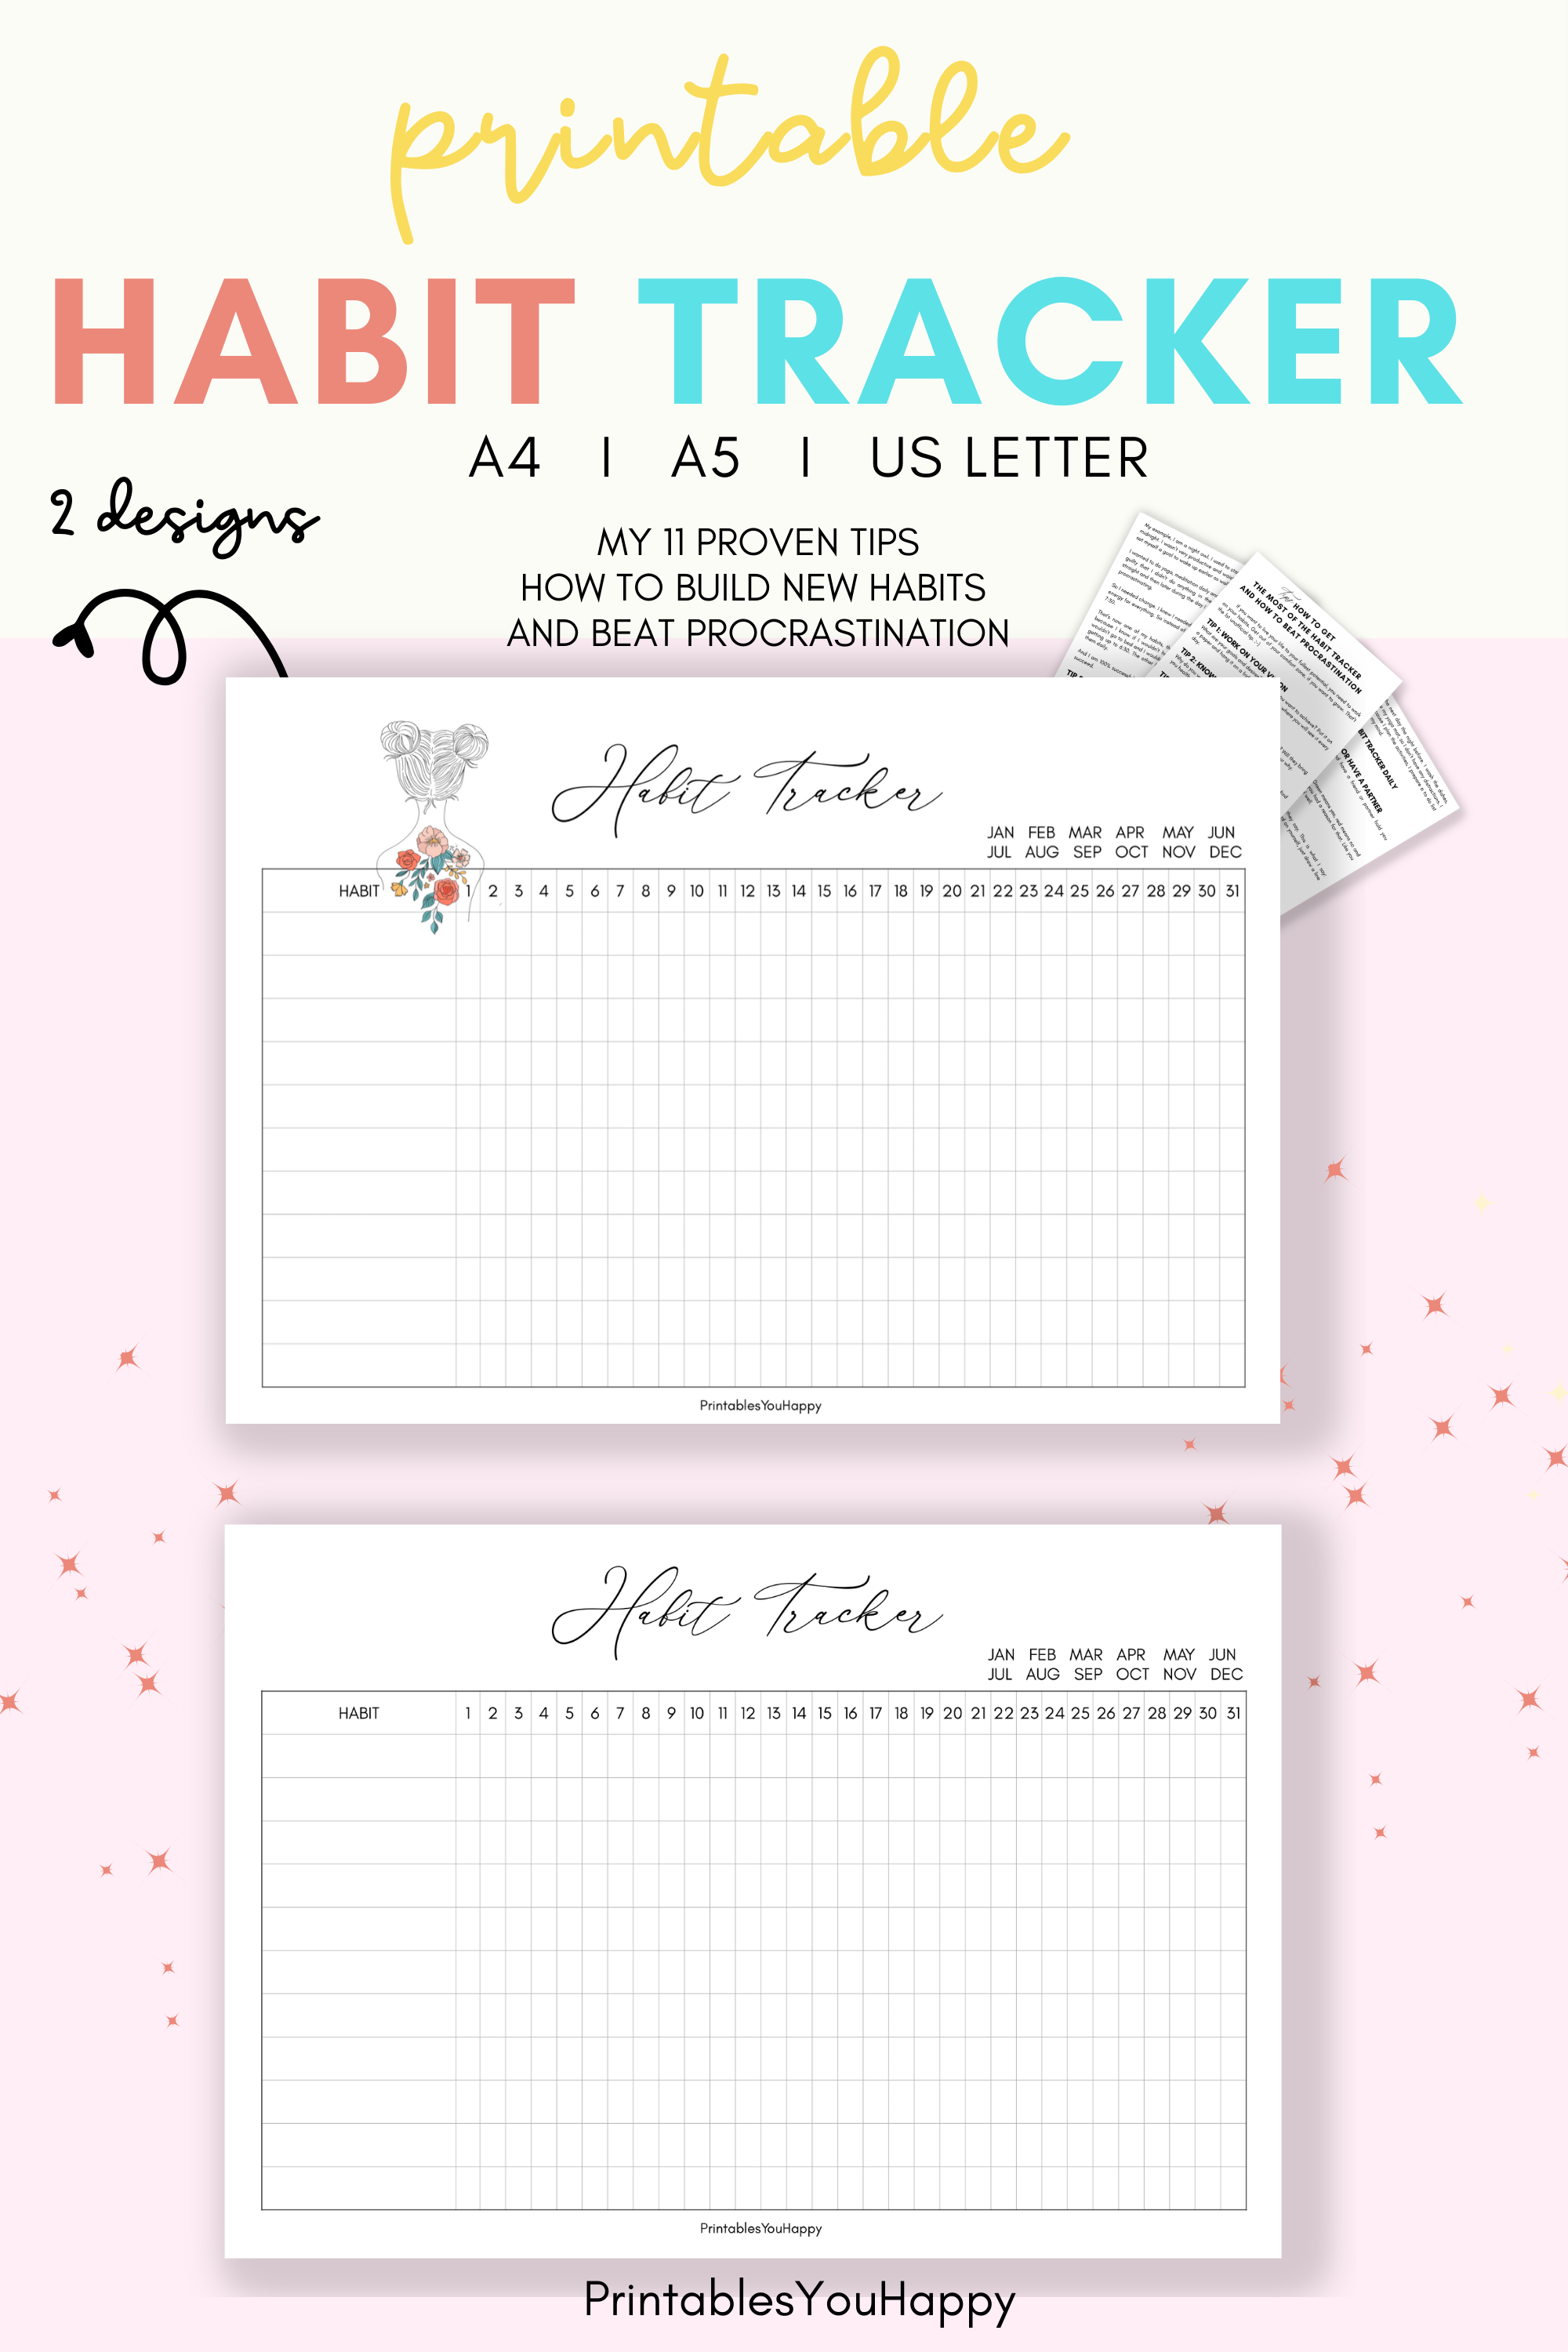 I love using this for me positive printable habit tracker with girl design. I need some positivity when goes about these serious habits. :-) I'm looking forward to do the habit tracking and I'm 100 % successful since I started. I never skip my new habits. I changed to an early bird and now I have time for yoga and meditation in the morning. You will love 11 tips how to succeed. Today is the best day to start. #bulletjournal #minimalistdesign #habittrackerplanner #habitjournal #dailyhabit